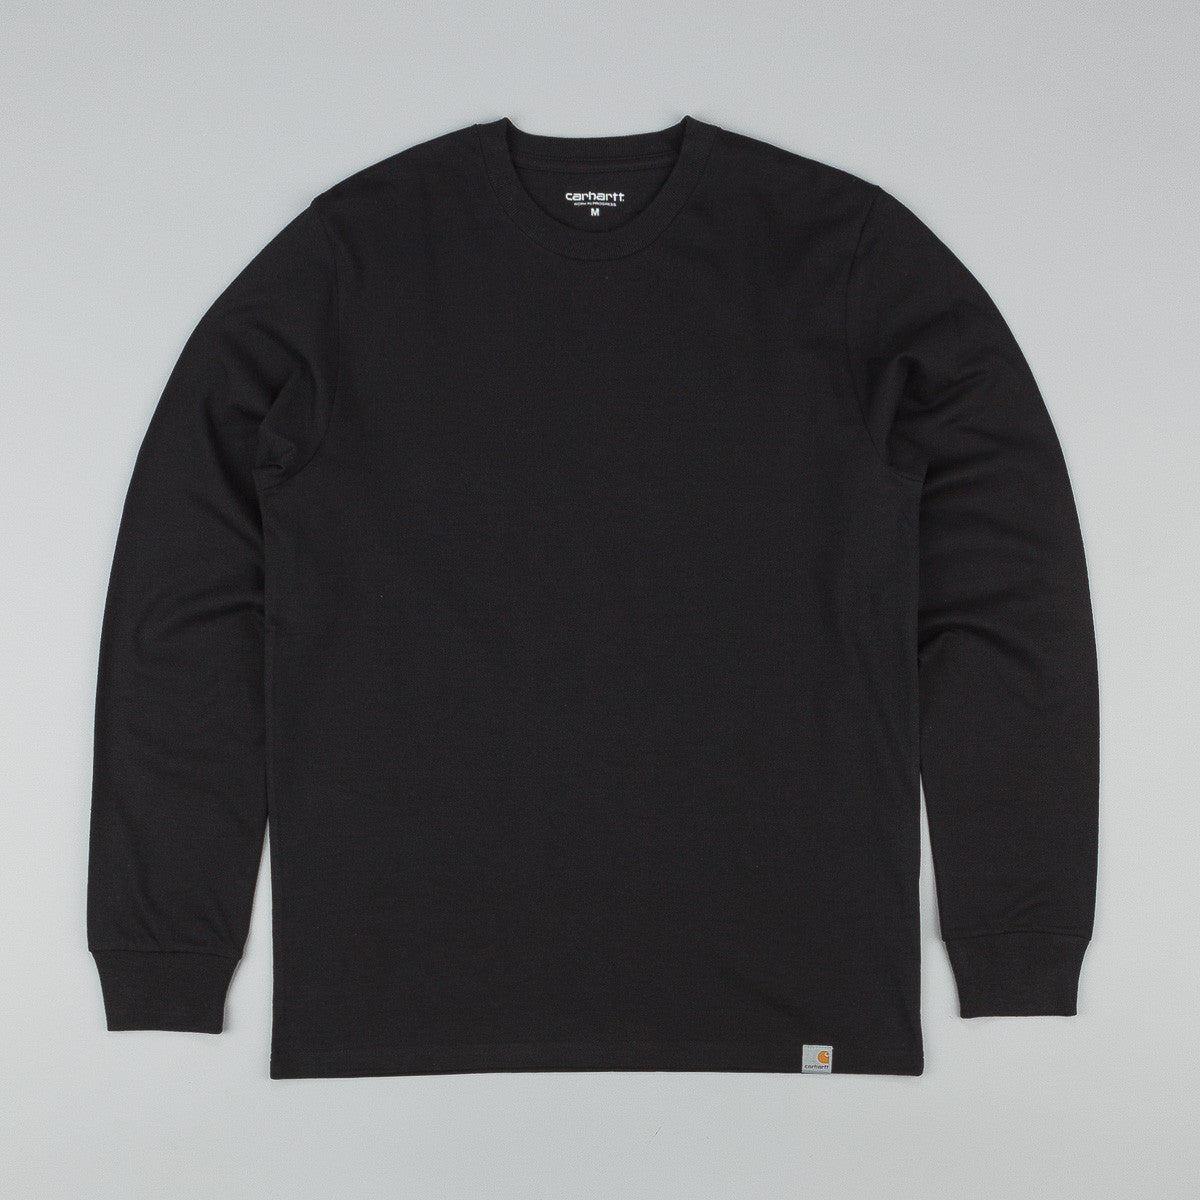 Carhartt Tony Long Sleeve T-Shirt